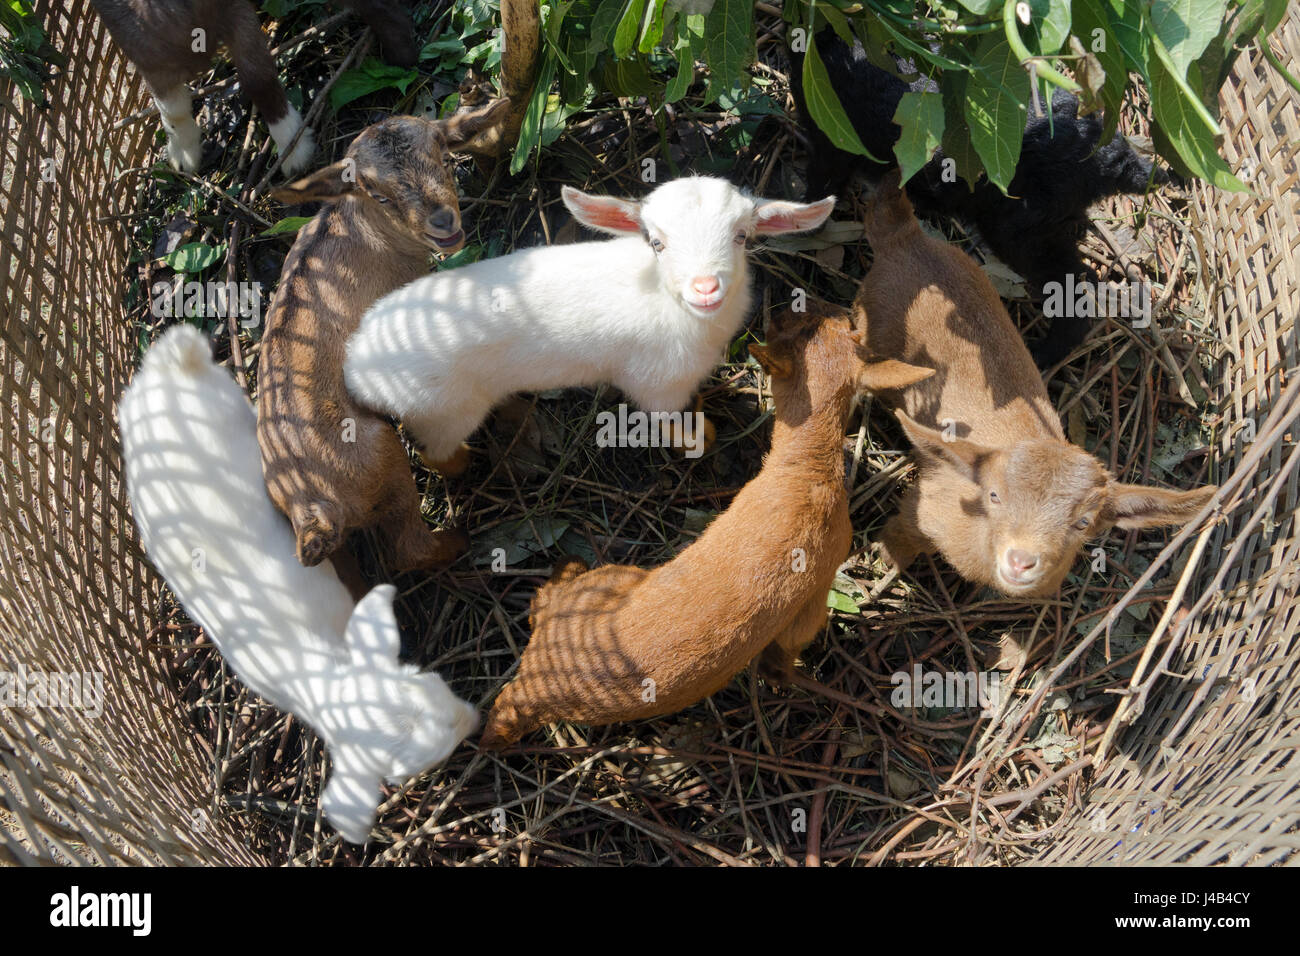 young-goats-kept-in-a-small-pen-made-of-braided-bamboo-near-gandruk-J4B4CY.jpg